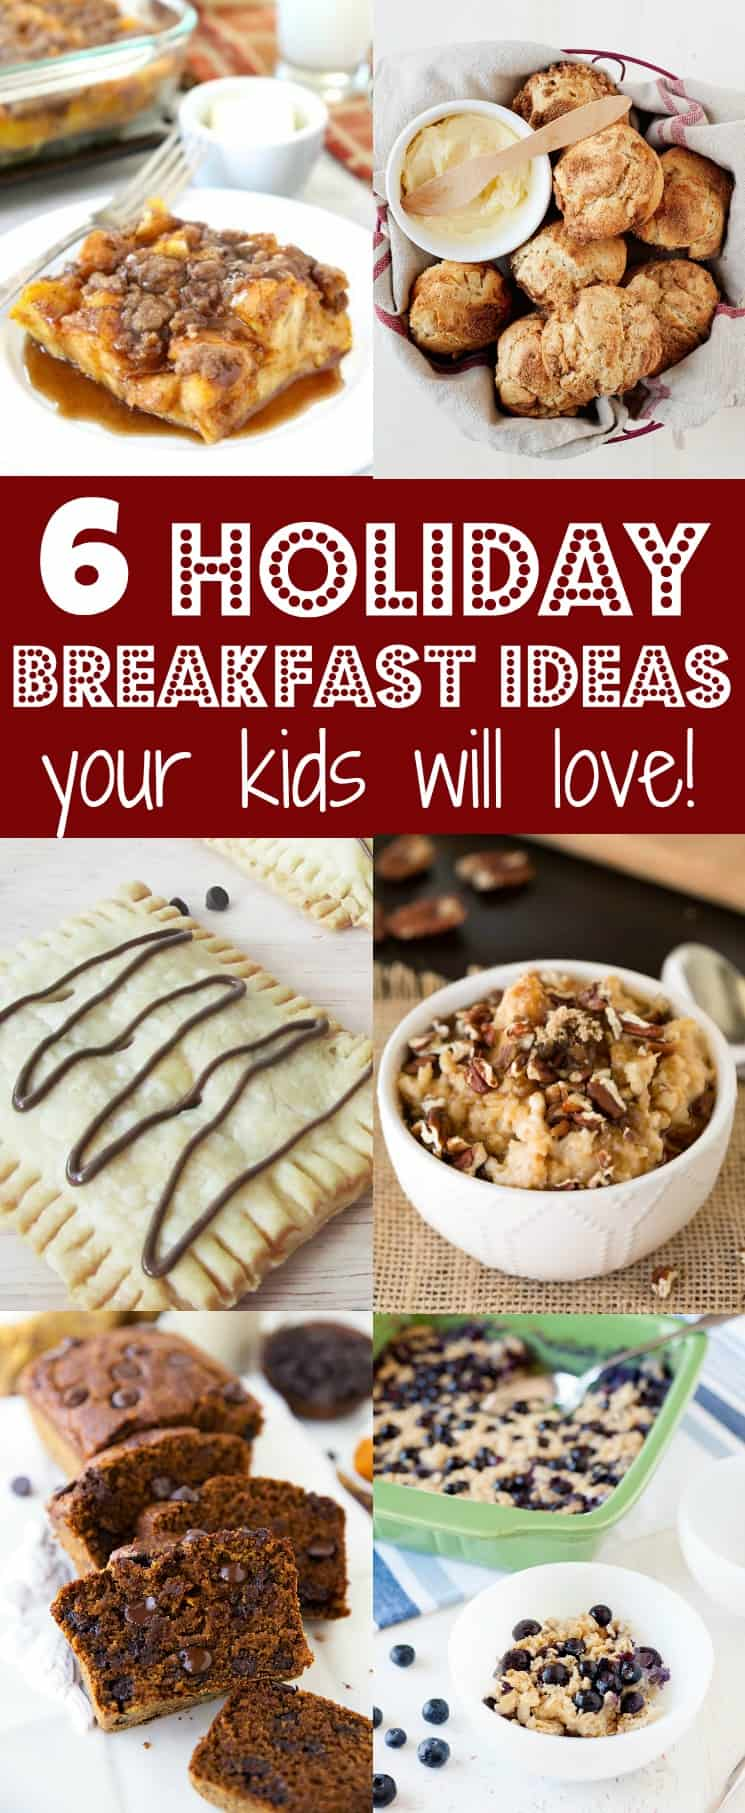 Leave room this holiday season for these 6 holiday breakfast recipes! They're delicious and indulgent, perfect for Thanksgiving or Christmas morning.